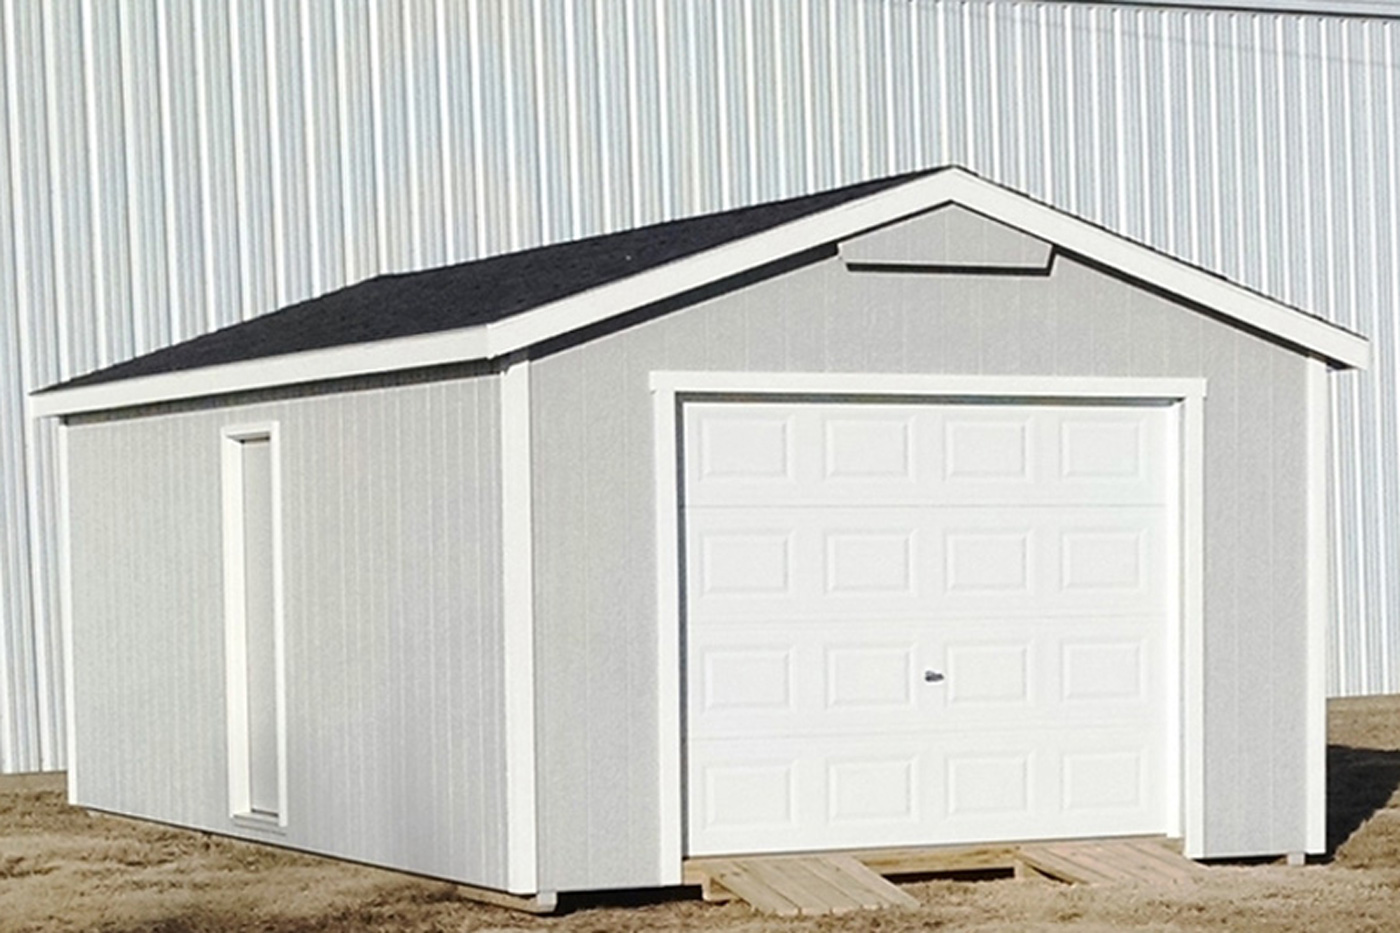 Portable Garages For Sale >> Prefab And Detached Car Garages For Sale In Ks